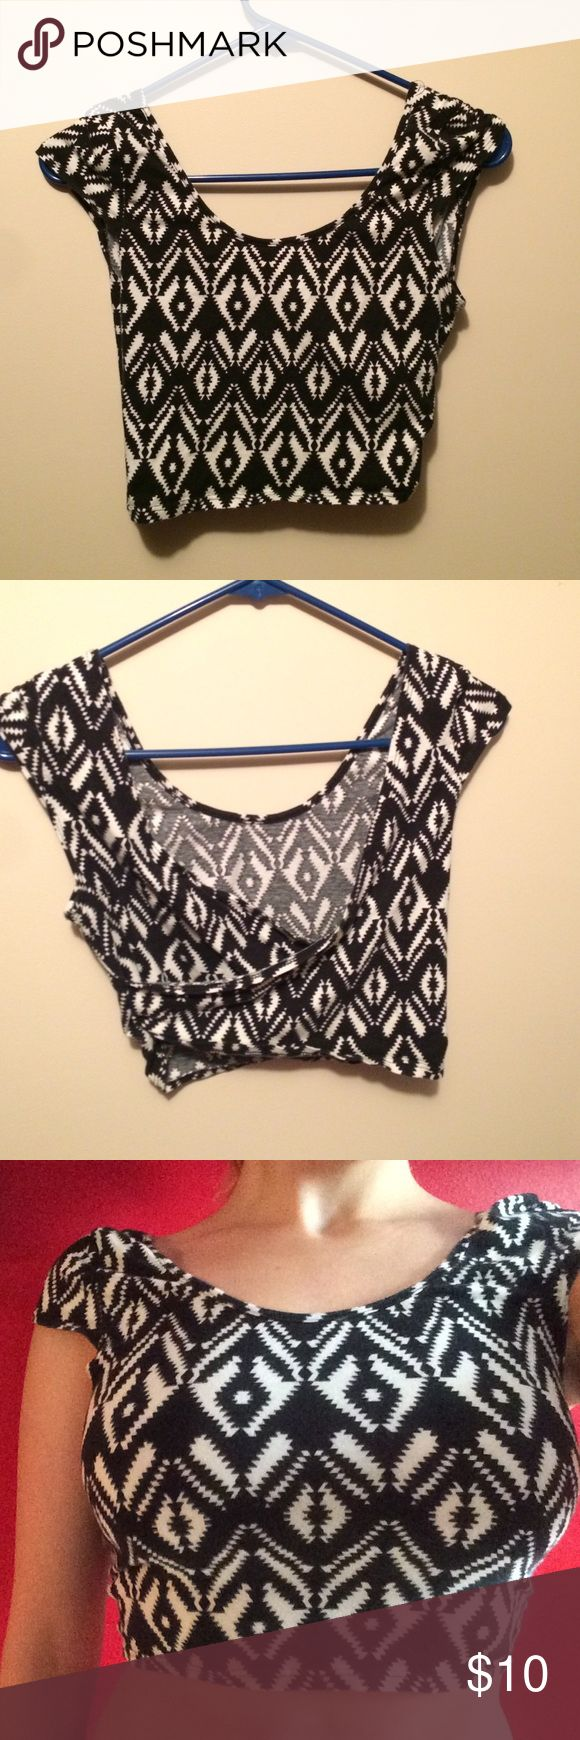 Black/white Aztec crop top with crossover back (Sorry about the unprofessionalism.) This has been worn a few times, but there's absolutely nothing wrong with it. Charlotte Russe Tops Crop Tops